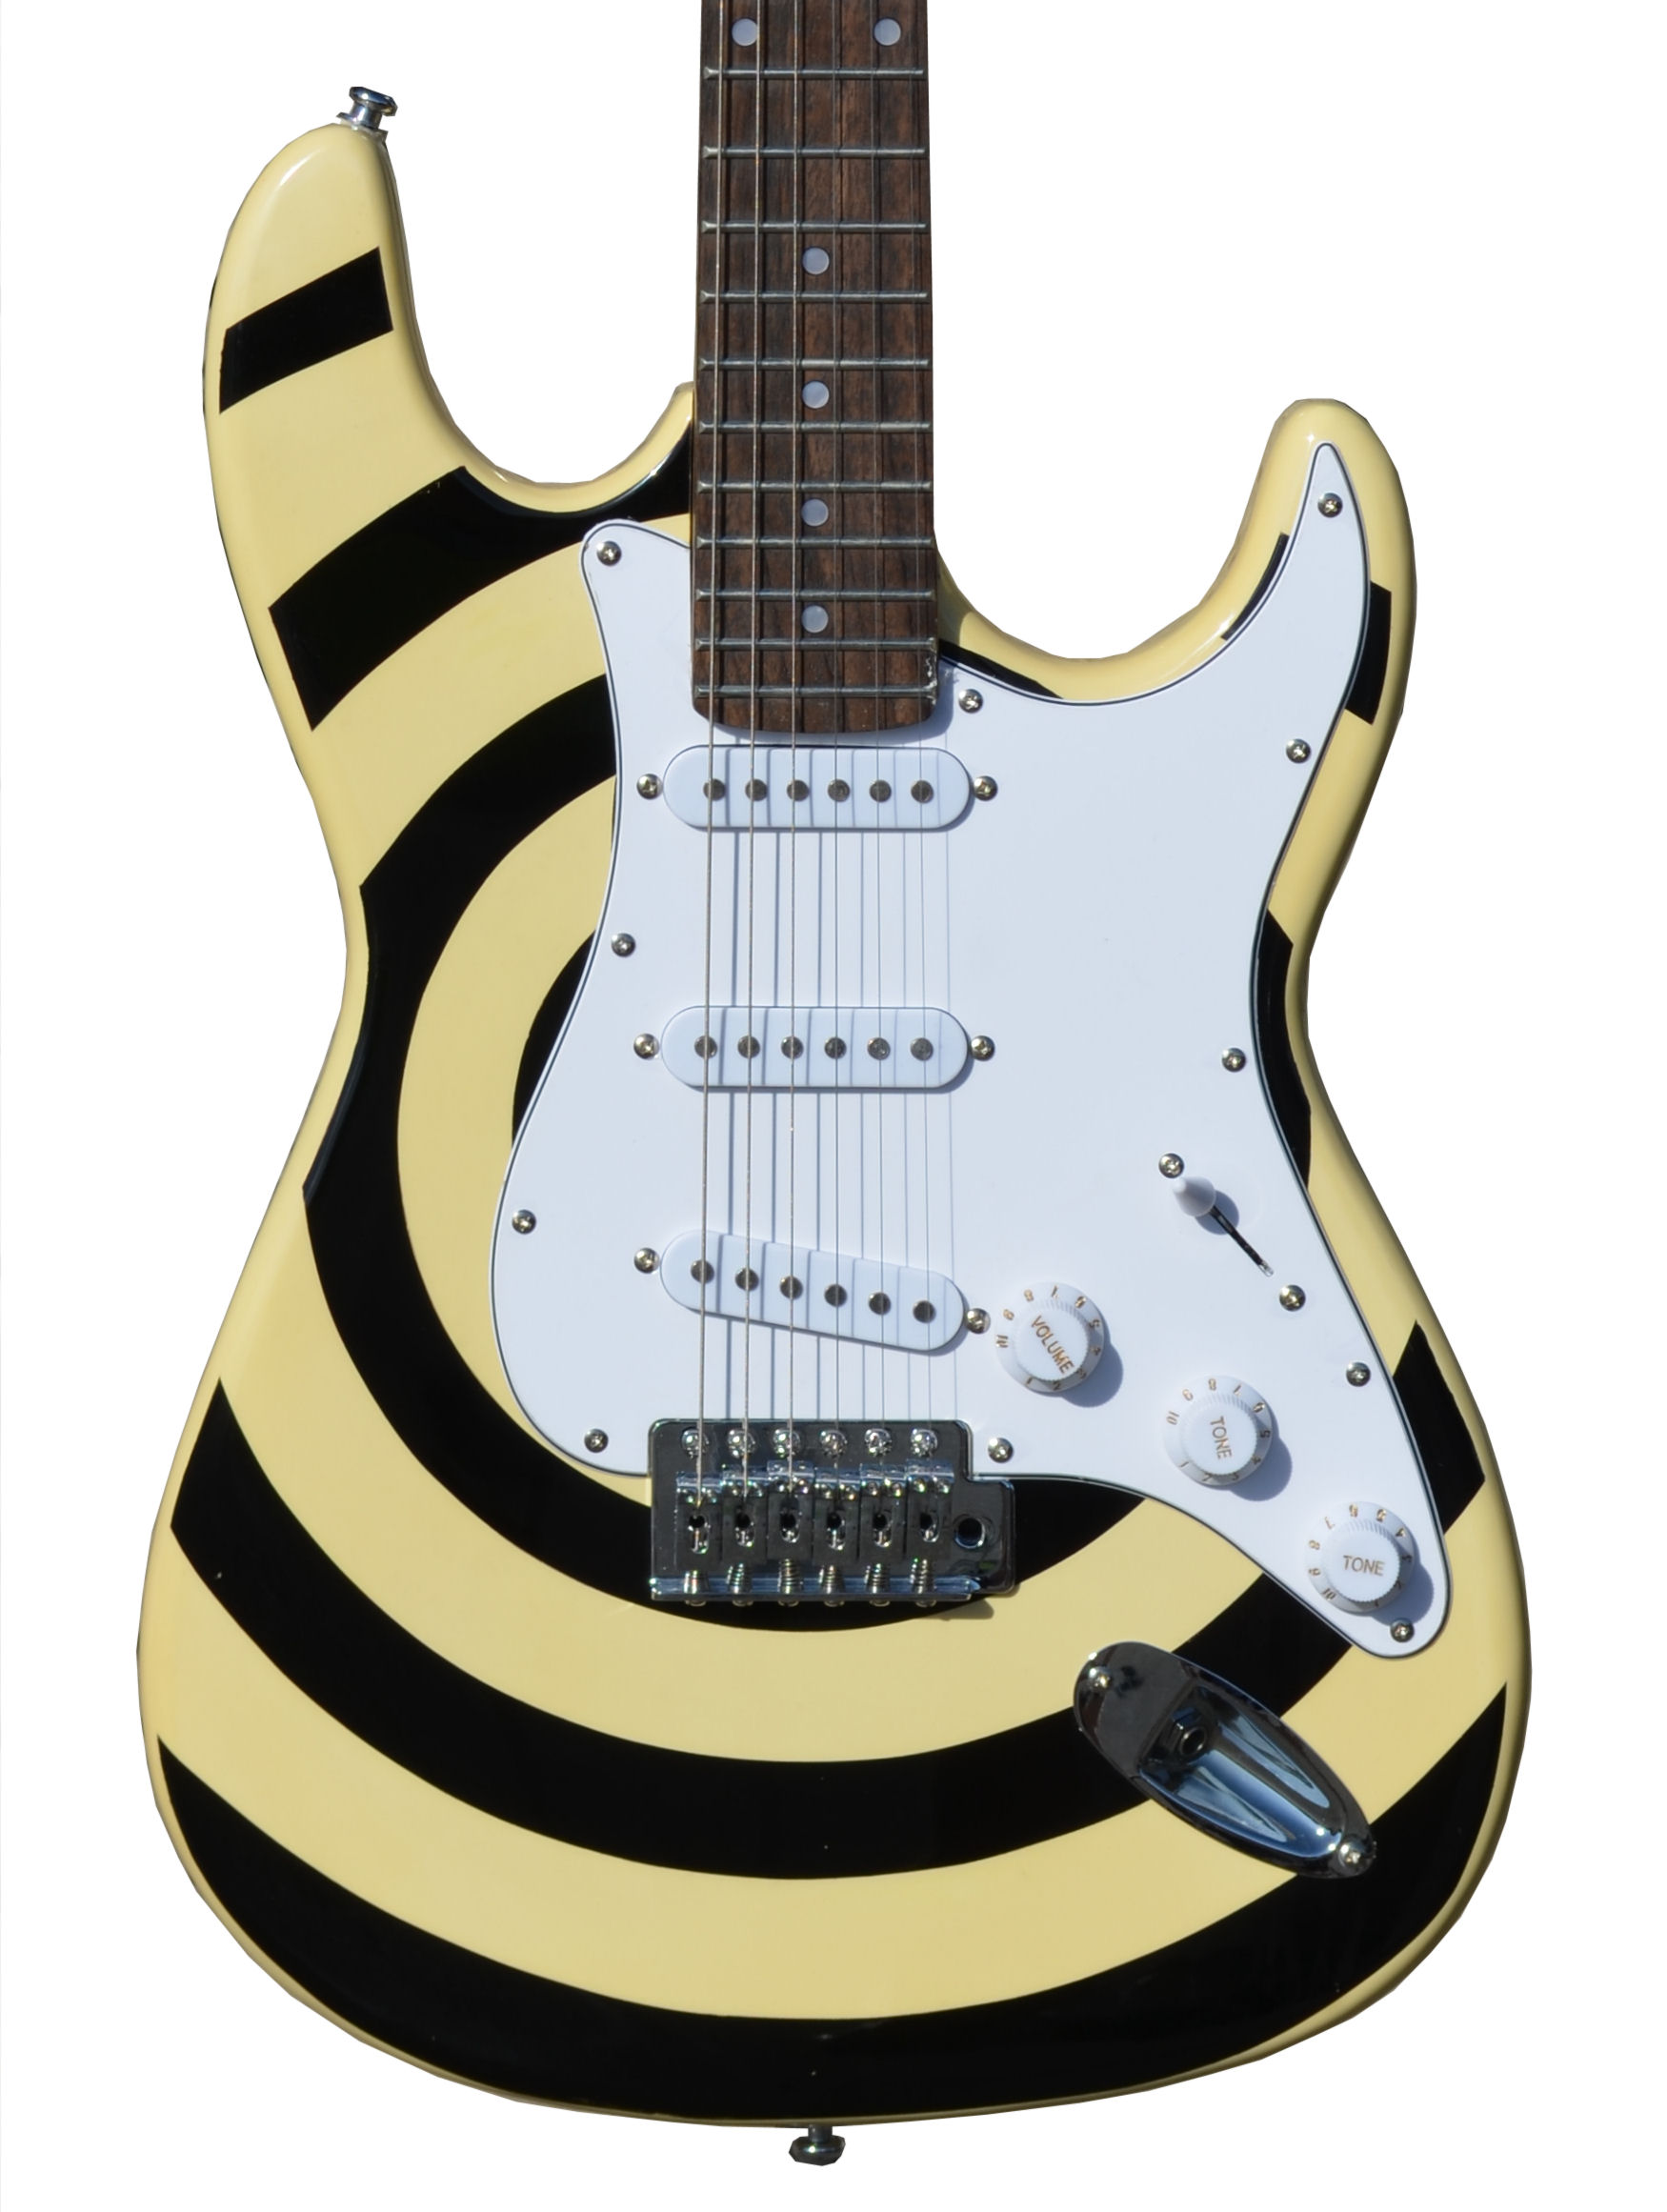 Charming Reznor Wiring Diagram Tall Bulldog Security Remote Starter With Keyless Entry Round Alarm Wiring 3 Humbuckers Old Bulldog Security Keyless Entry GreenRemote Start Diagram FISHBONE BULLSEYE STRAT STYLE GUITAR Super Quality · Music Express ..